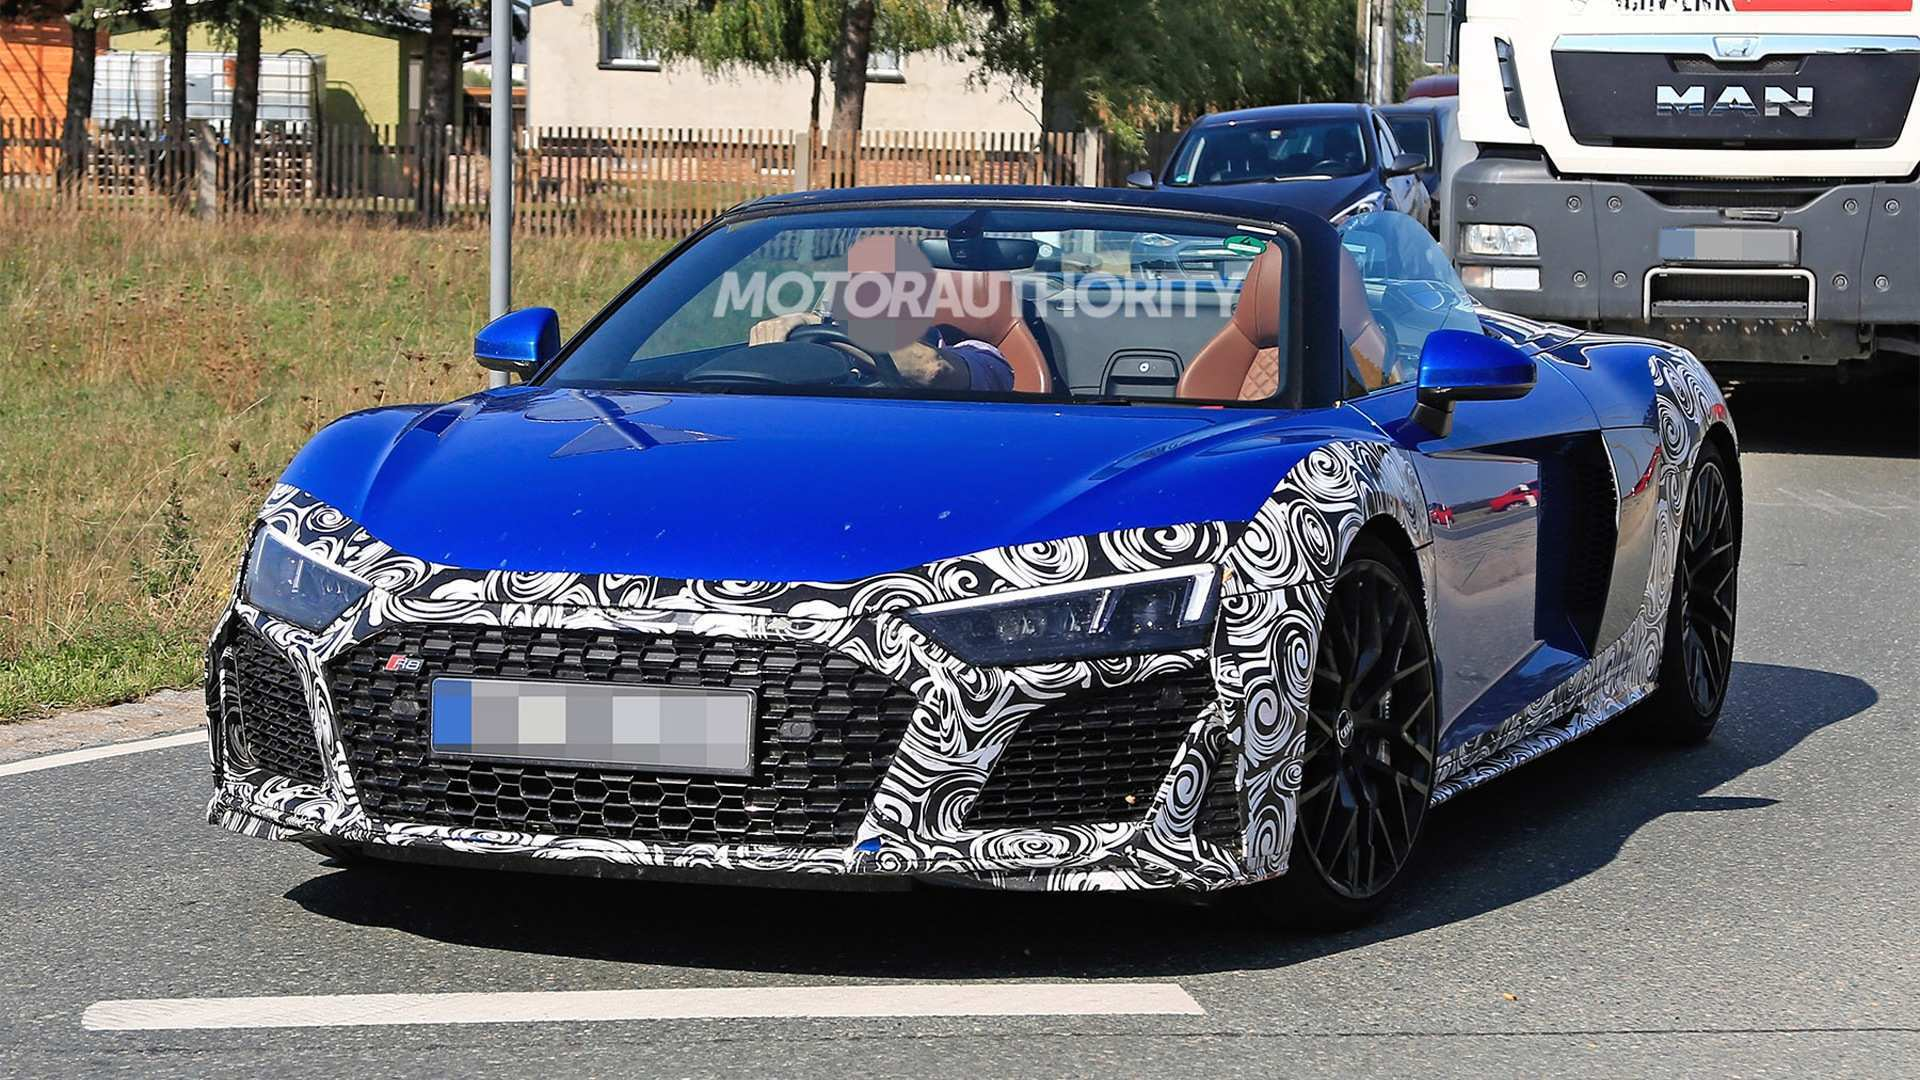 16 Concept of Audi R8 V10 2020 Spy Shoot by Audi R8 V10 2020